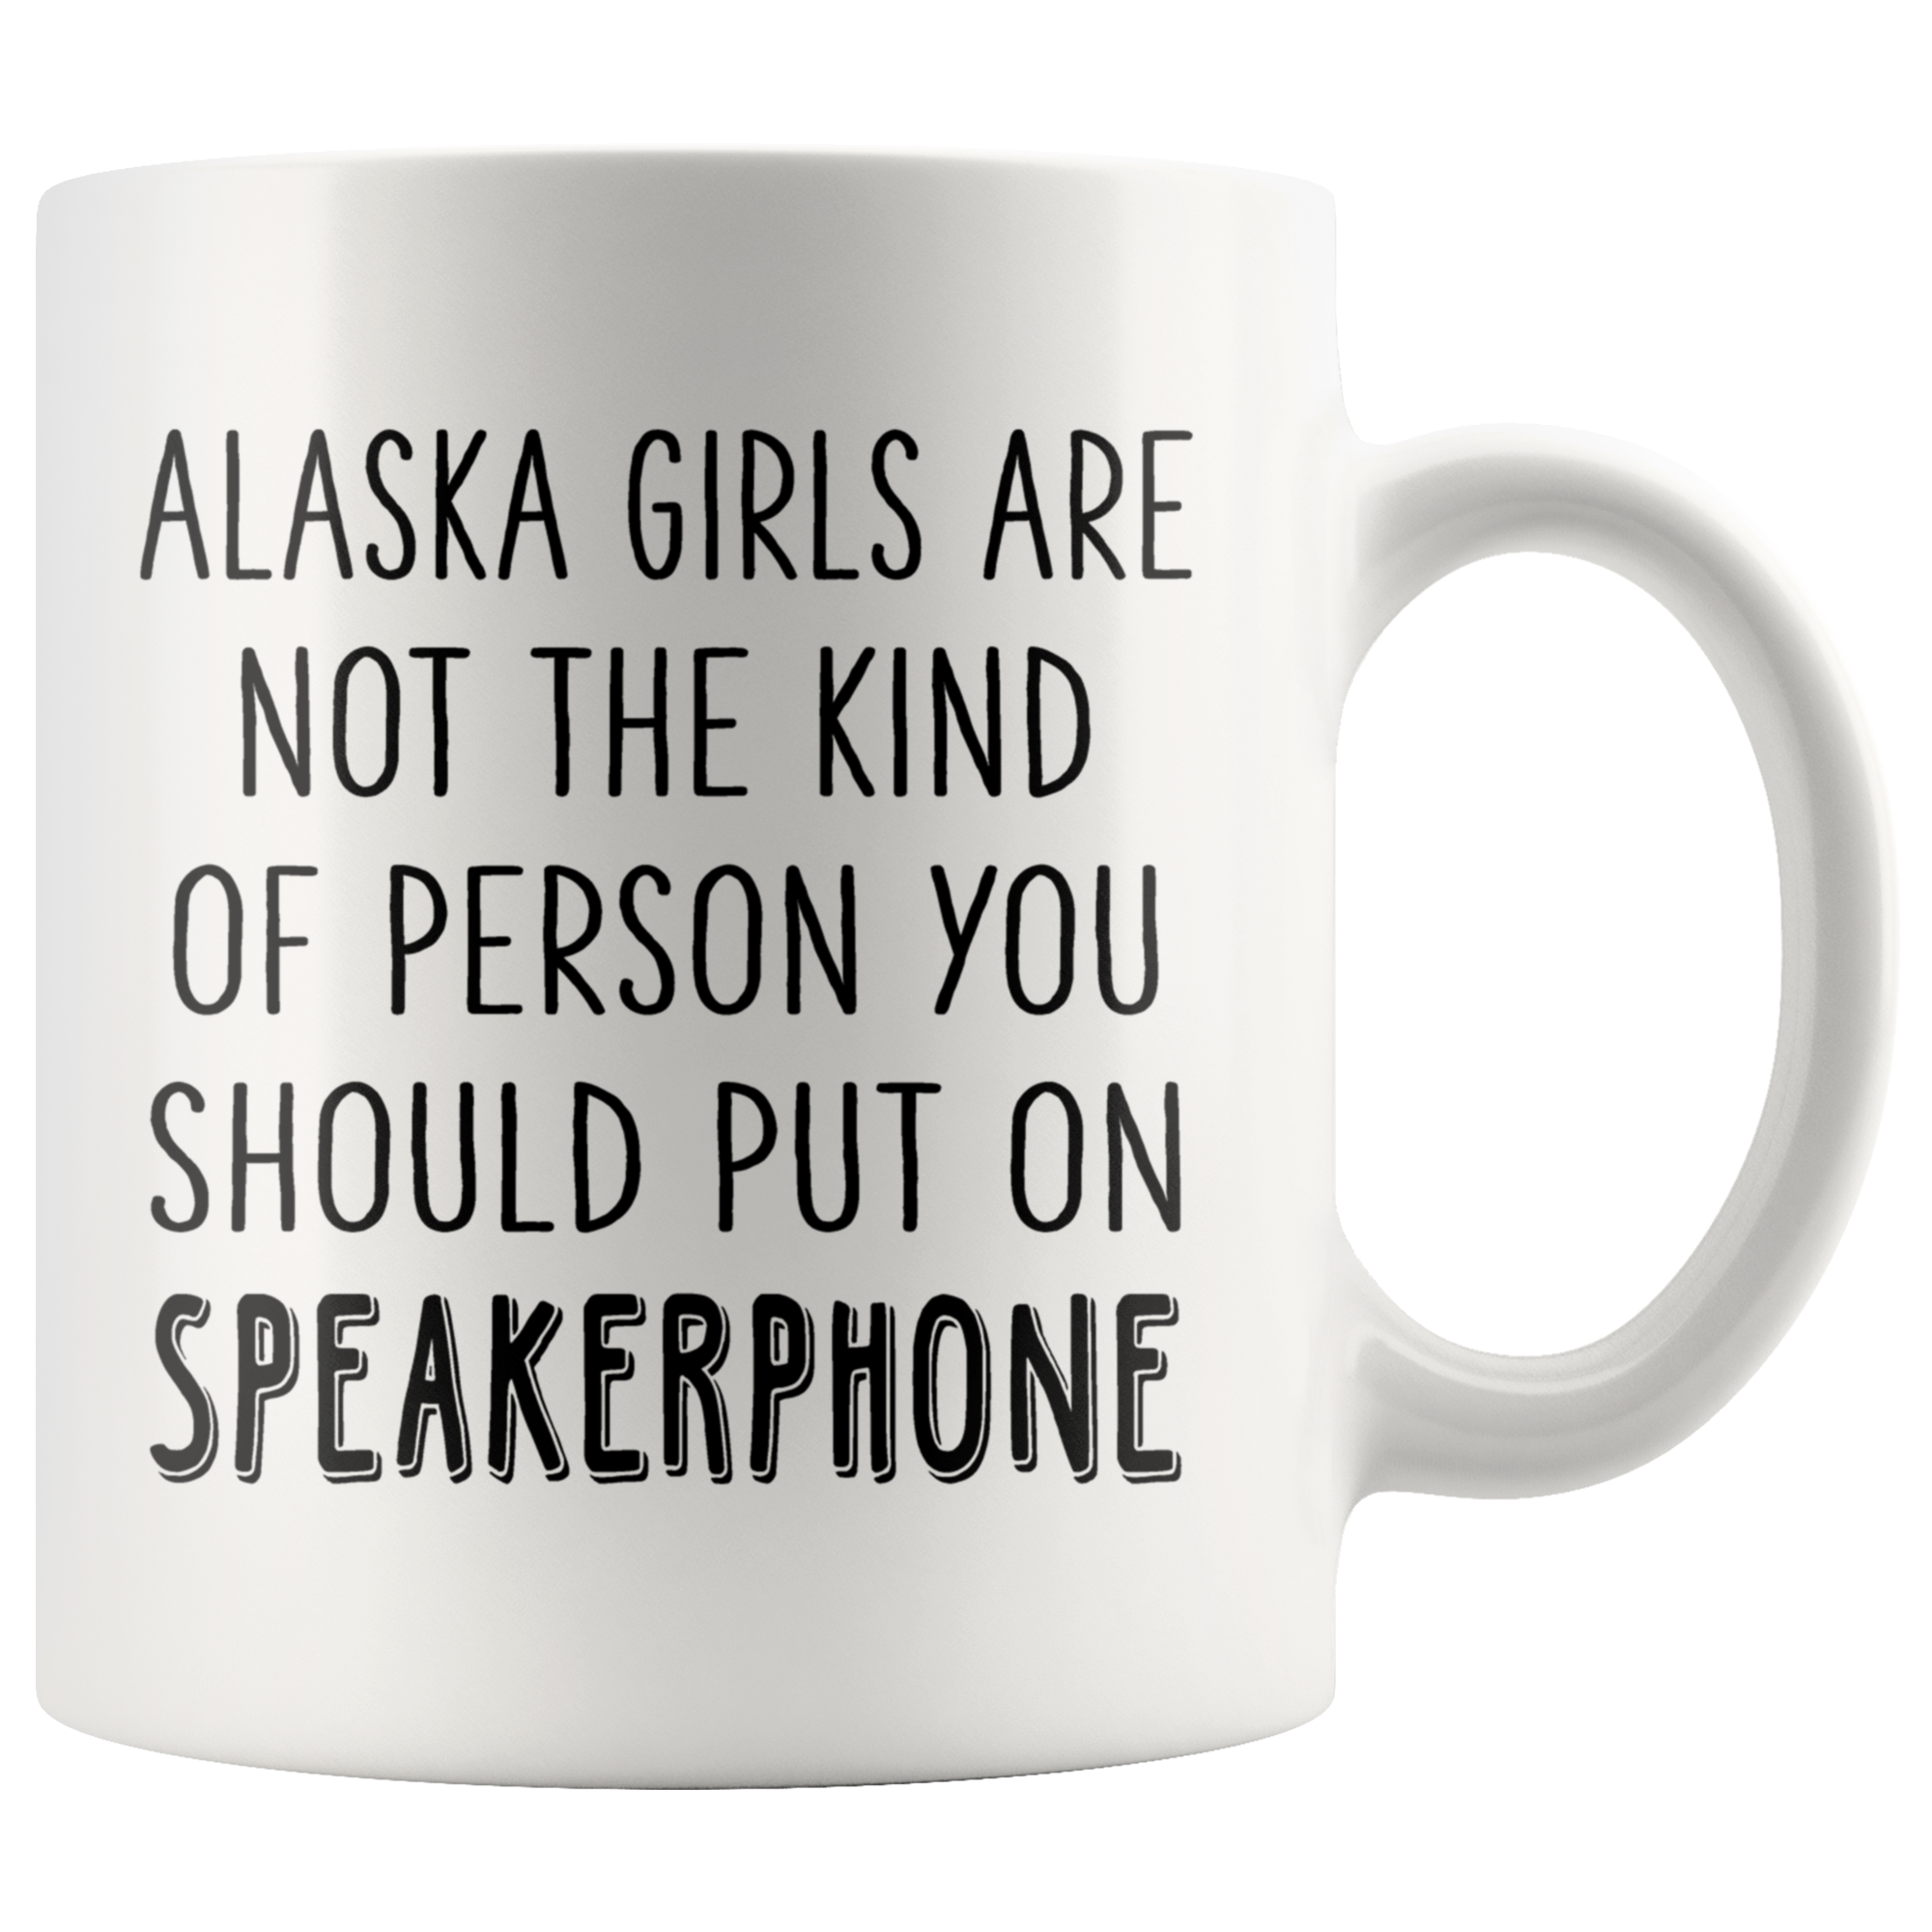 ALASKA GIRLS ARE NOT THE KIND OF PERSON